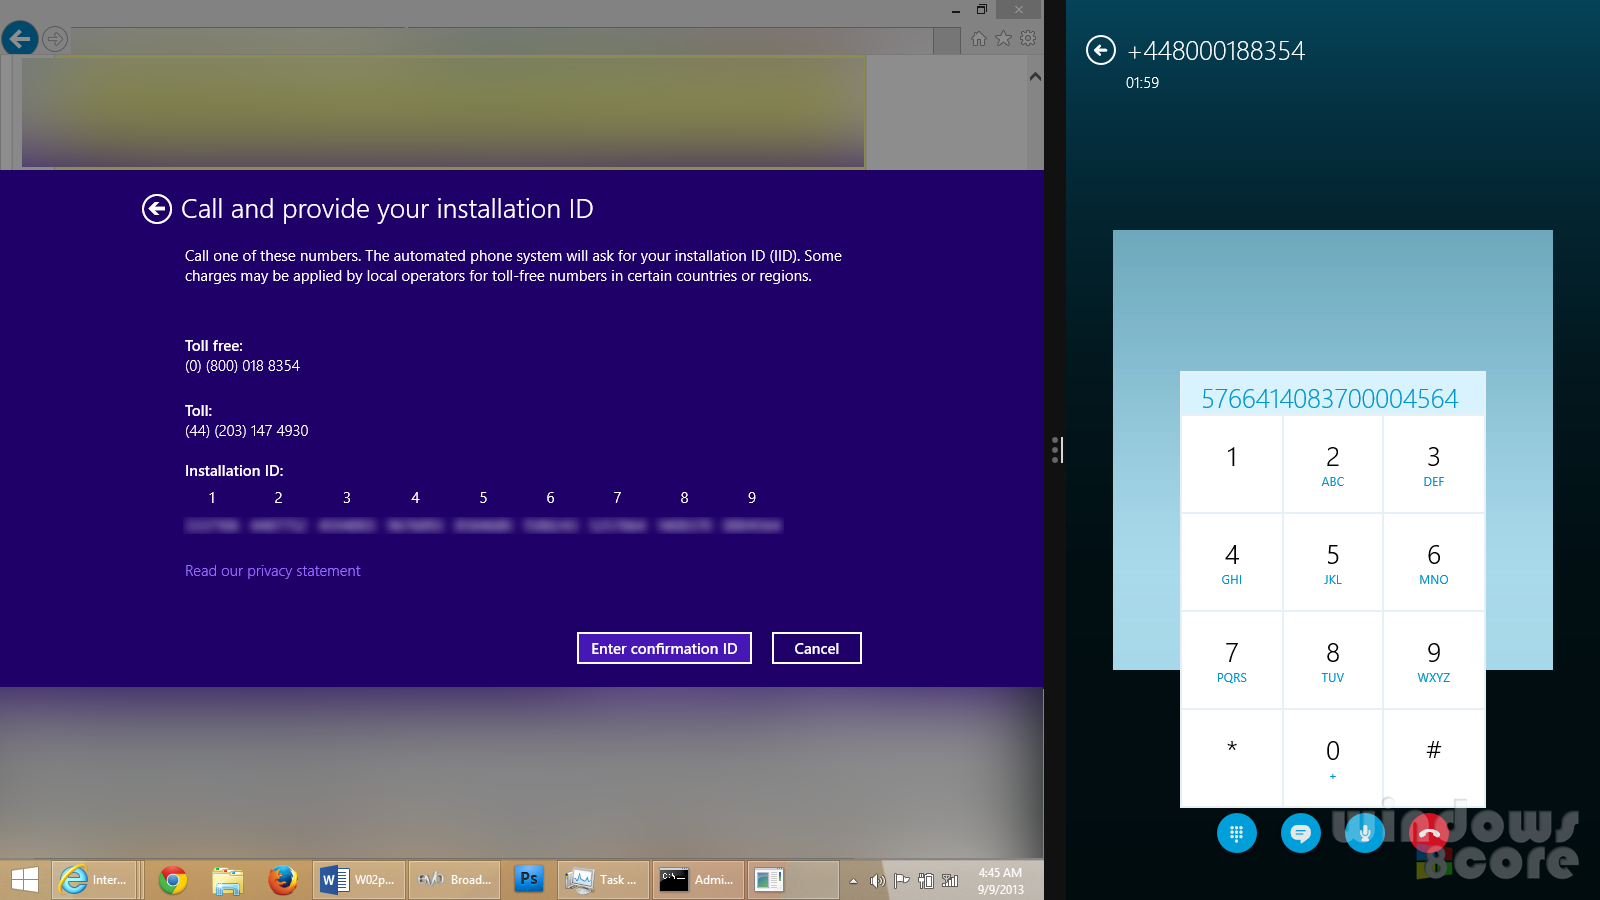 Activation Windows 10 - 8 1 by One Call skype - Original